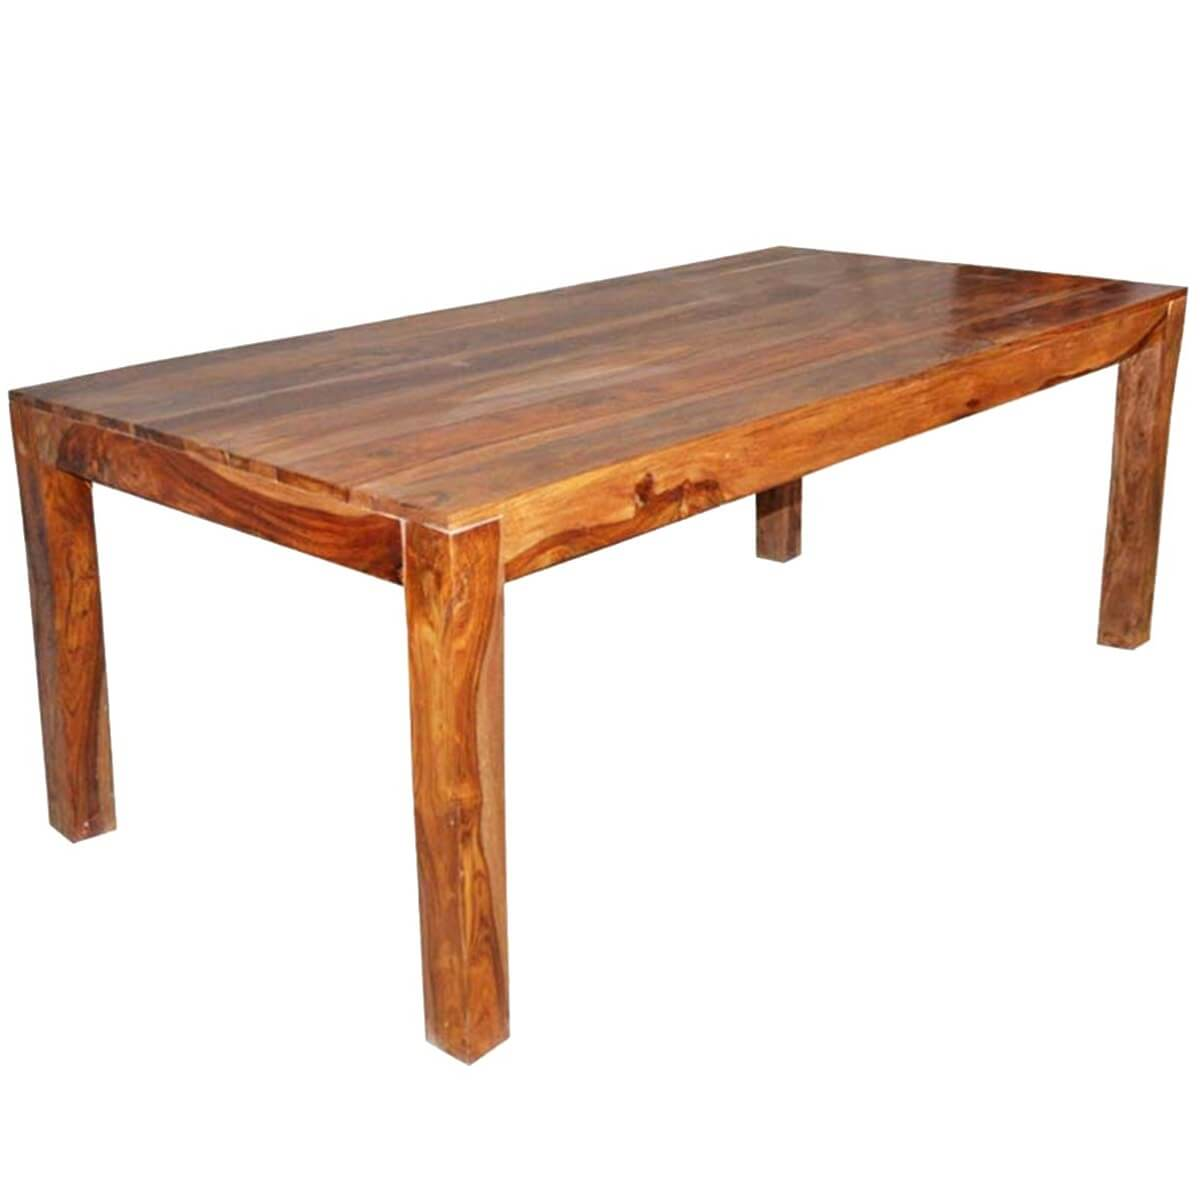 Kluane Simplicity Contemporary Solid Wood Dining Table : 3541 from sierralivingconcepts.com size 1200 x 1200 jpeg 211kB